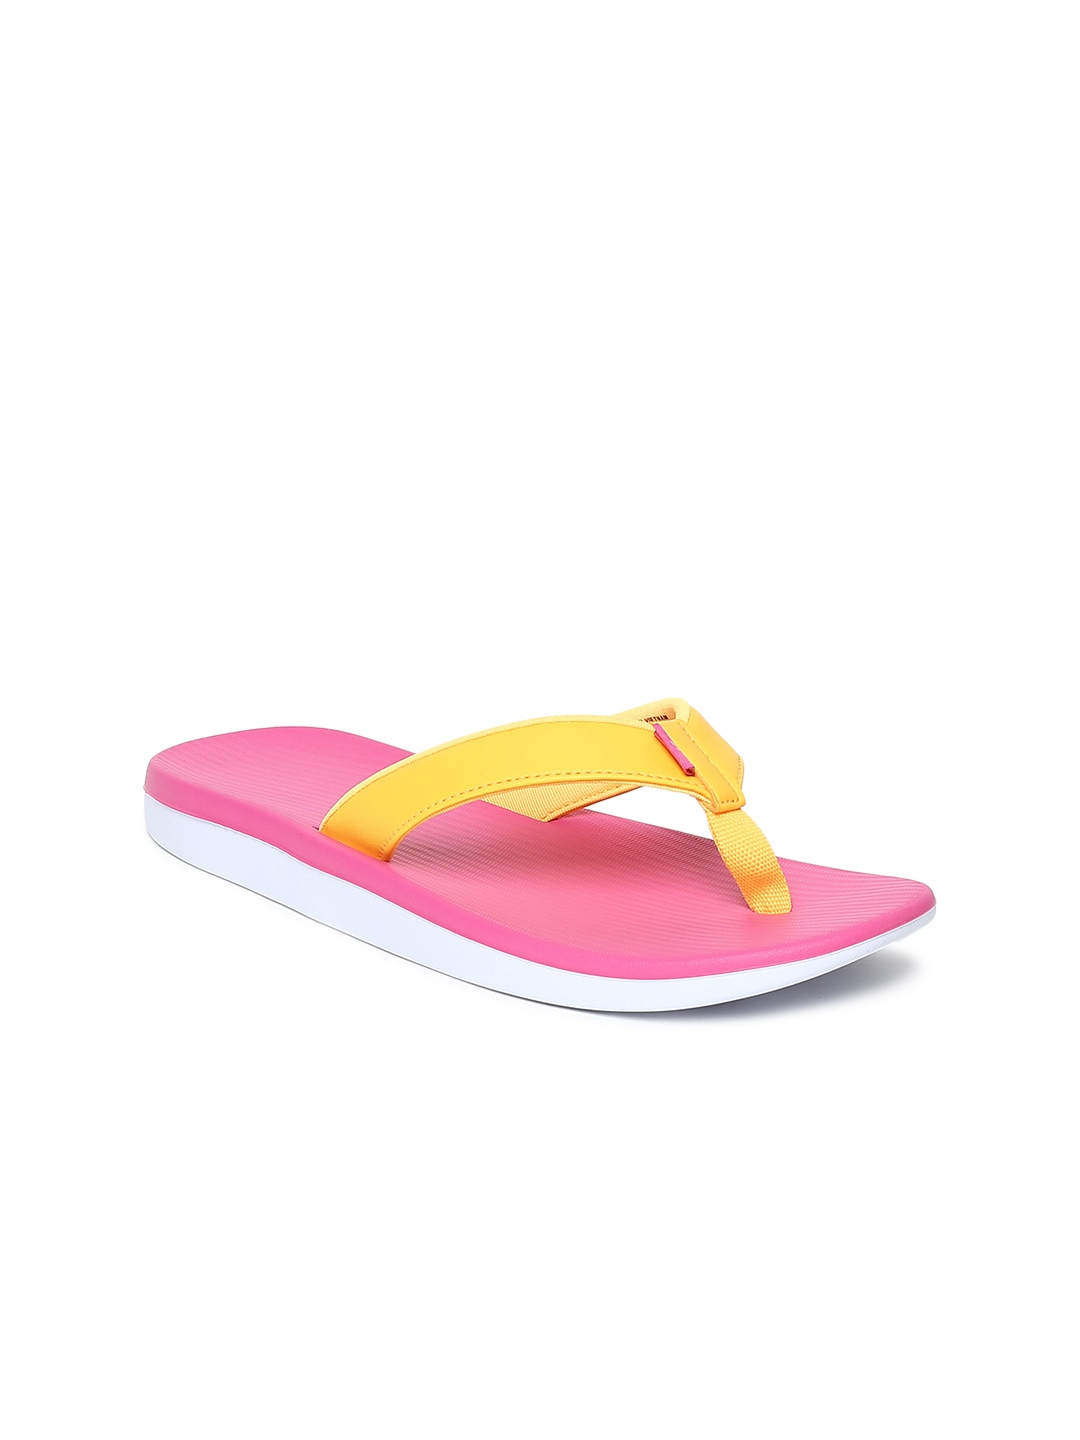 3c74e70e597b Nike Flip-Flops - Buy Nike Flip-Flops for Men Women Online